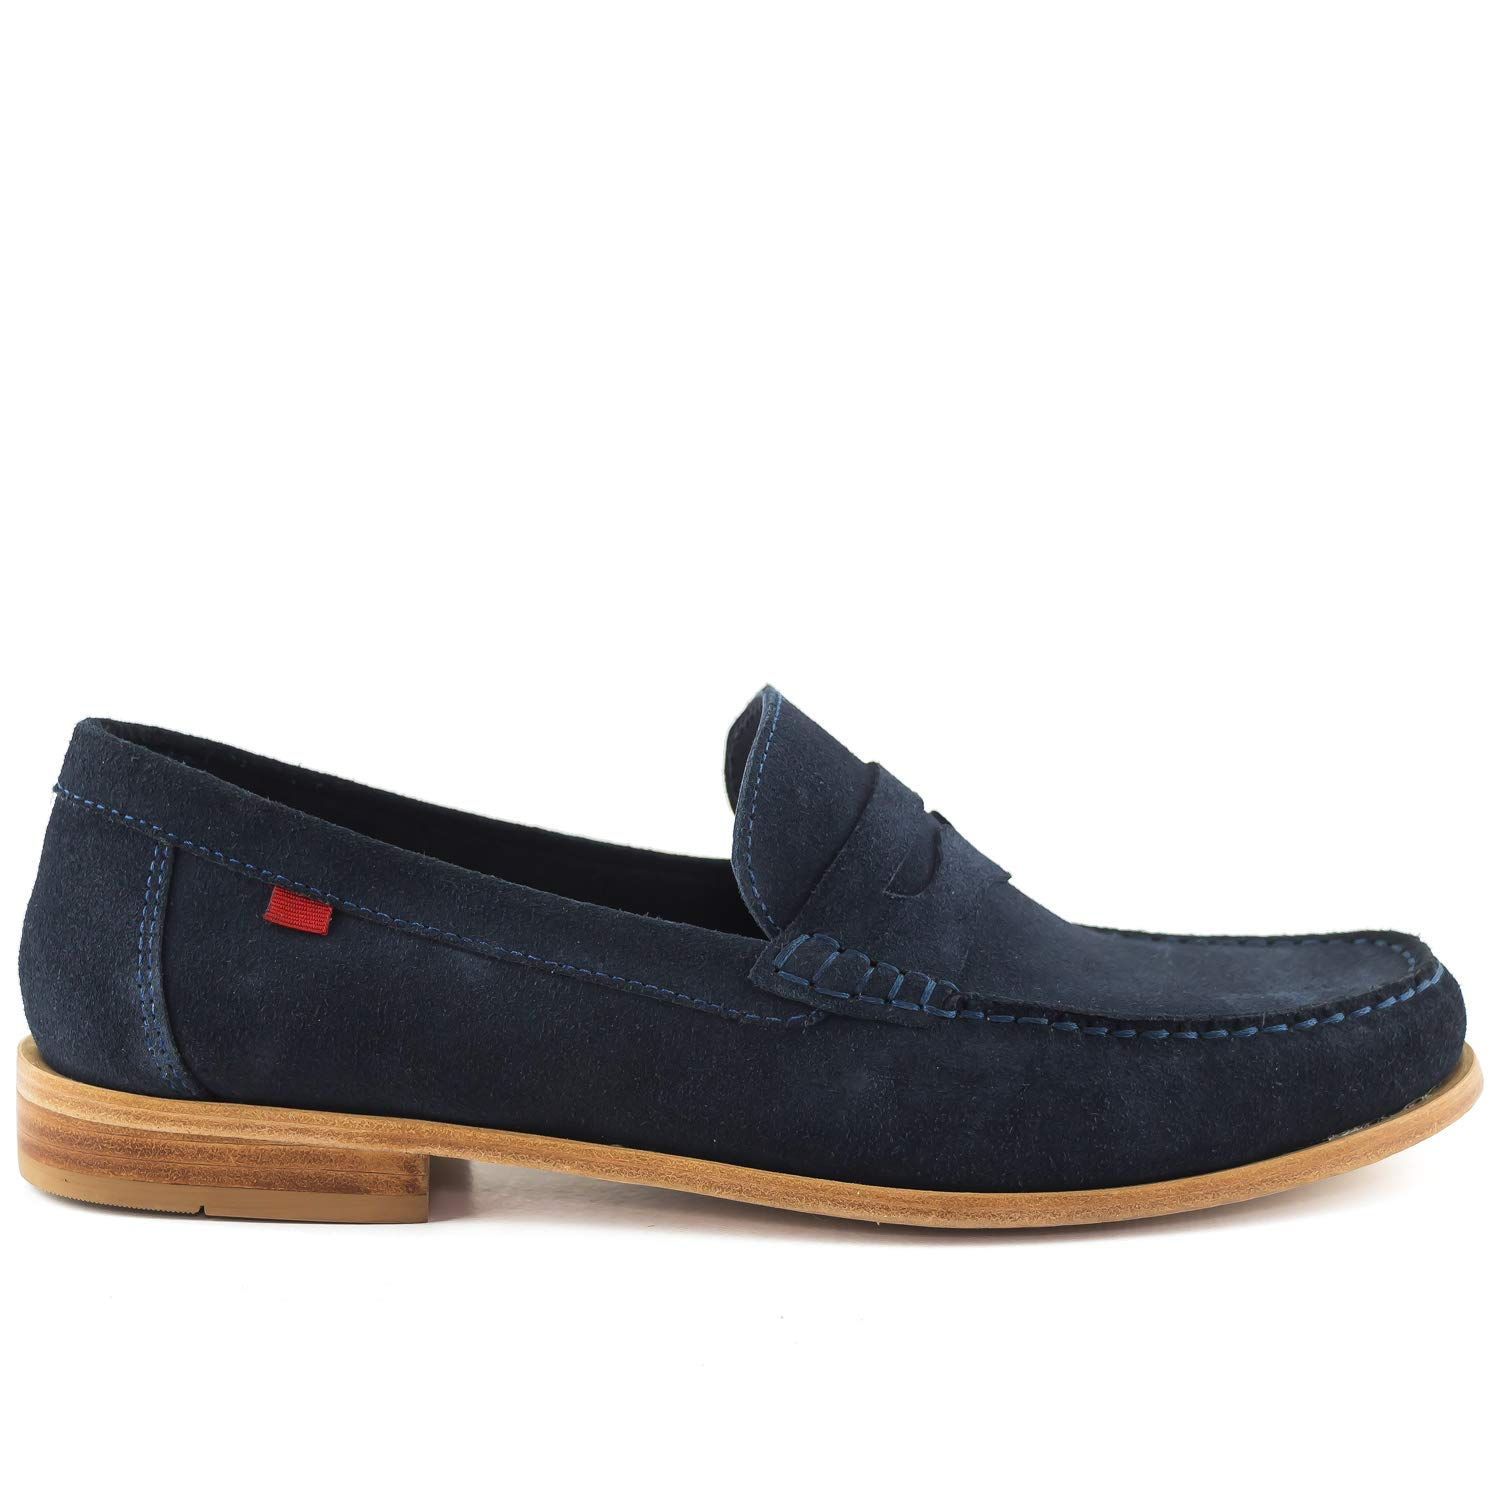 Driver Club USA Mens Leather Made in Brazil Westport Loafer